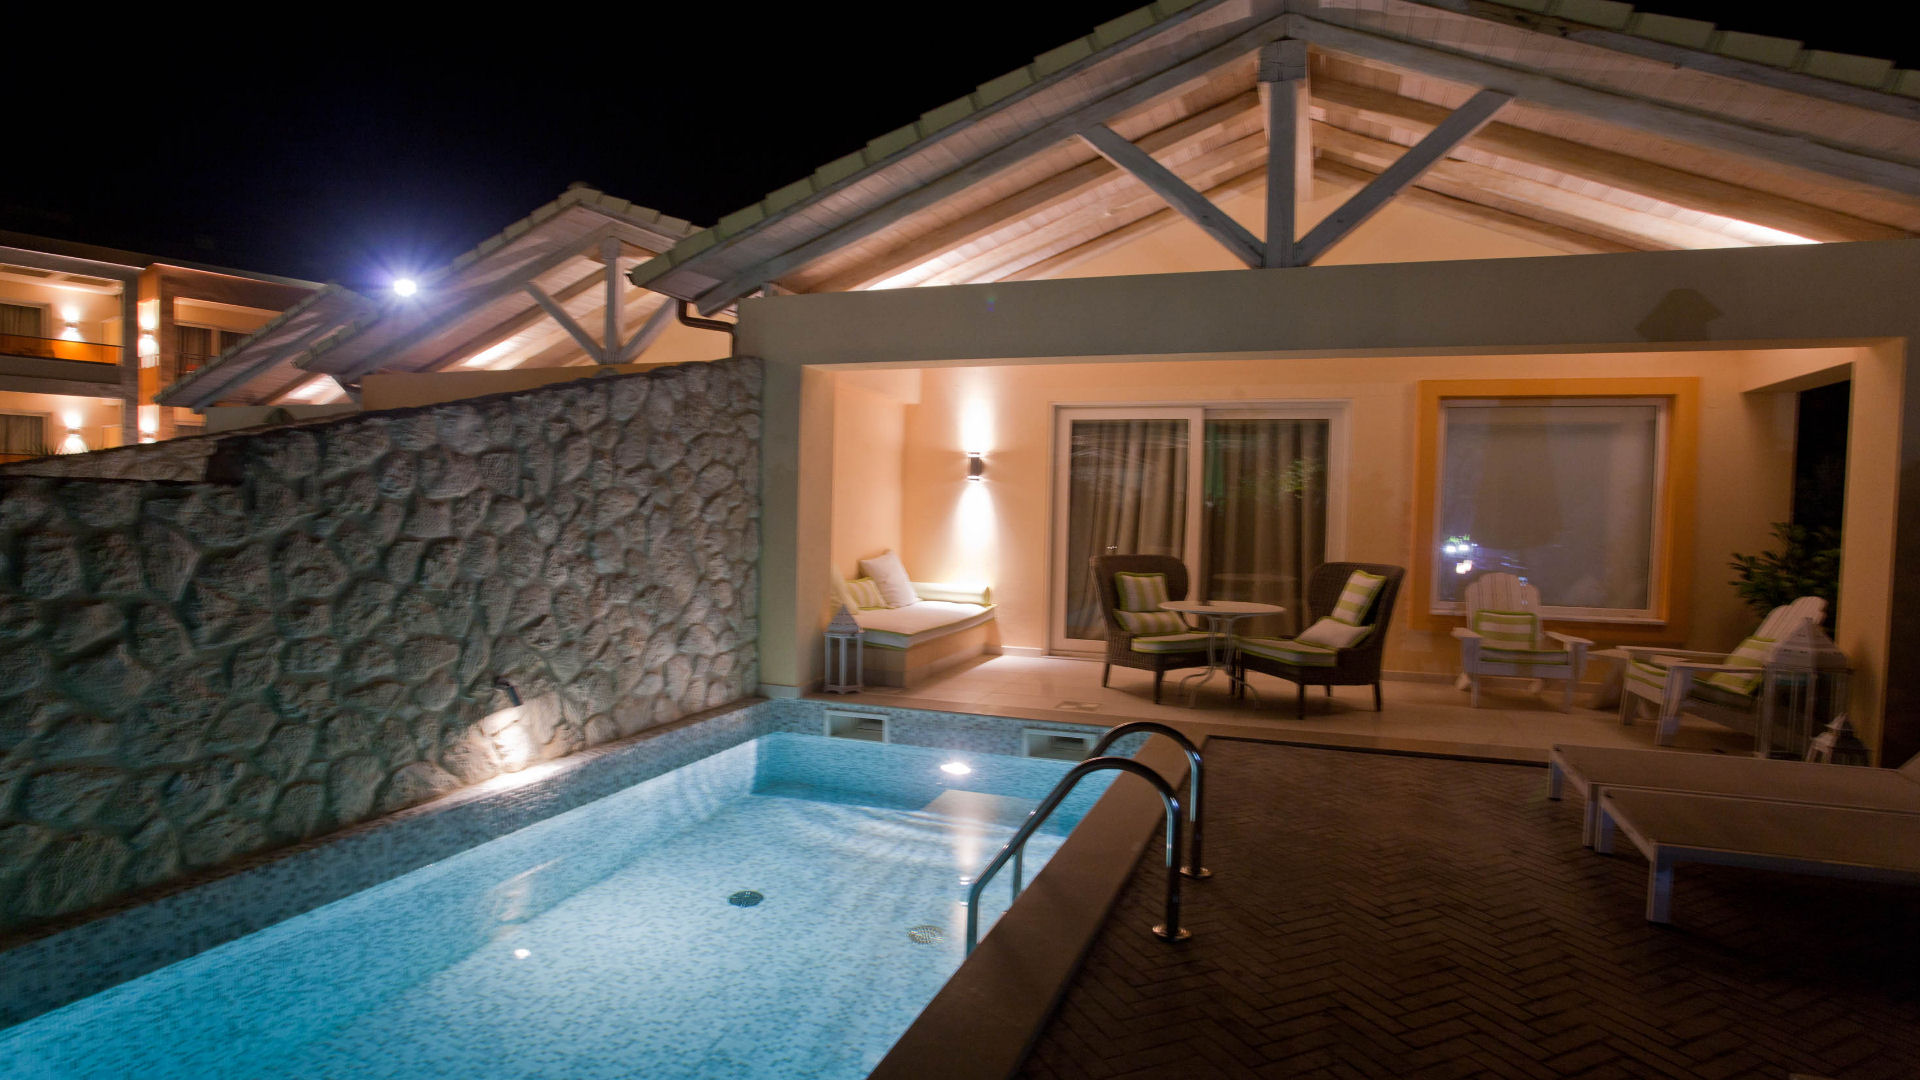 VIP Villa with Jacuzzi/Hot Tub and Private Pool